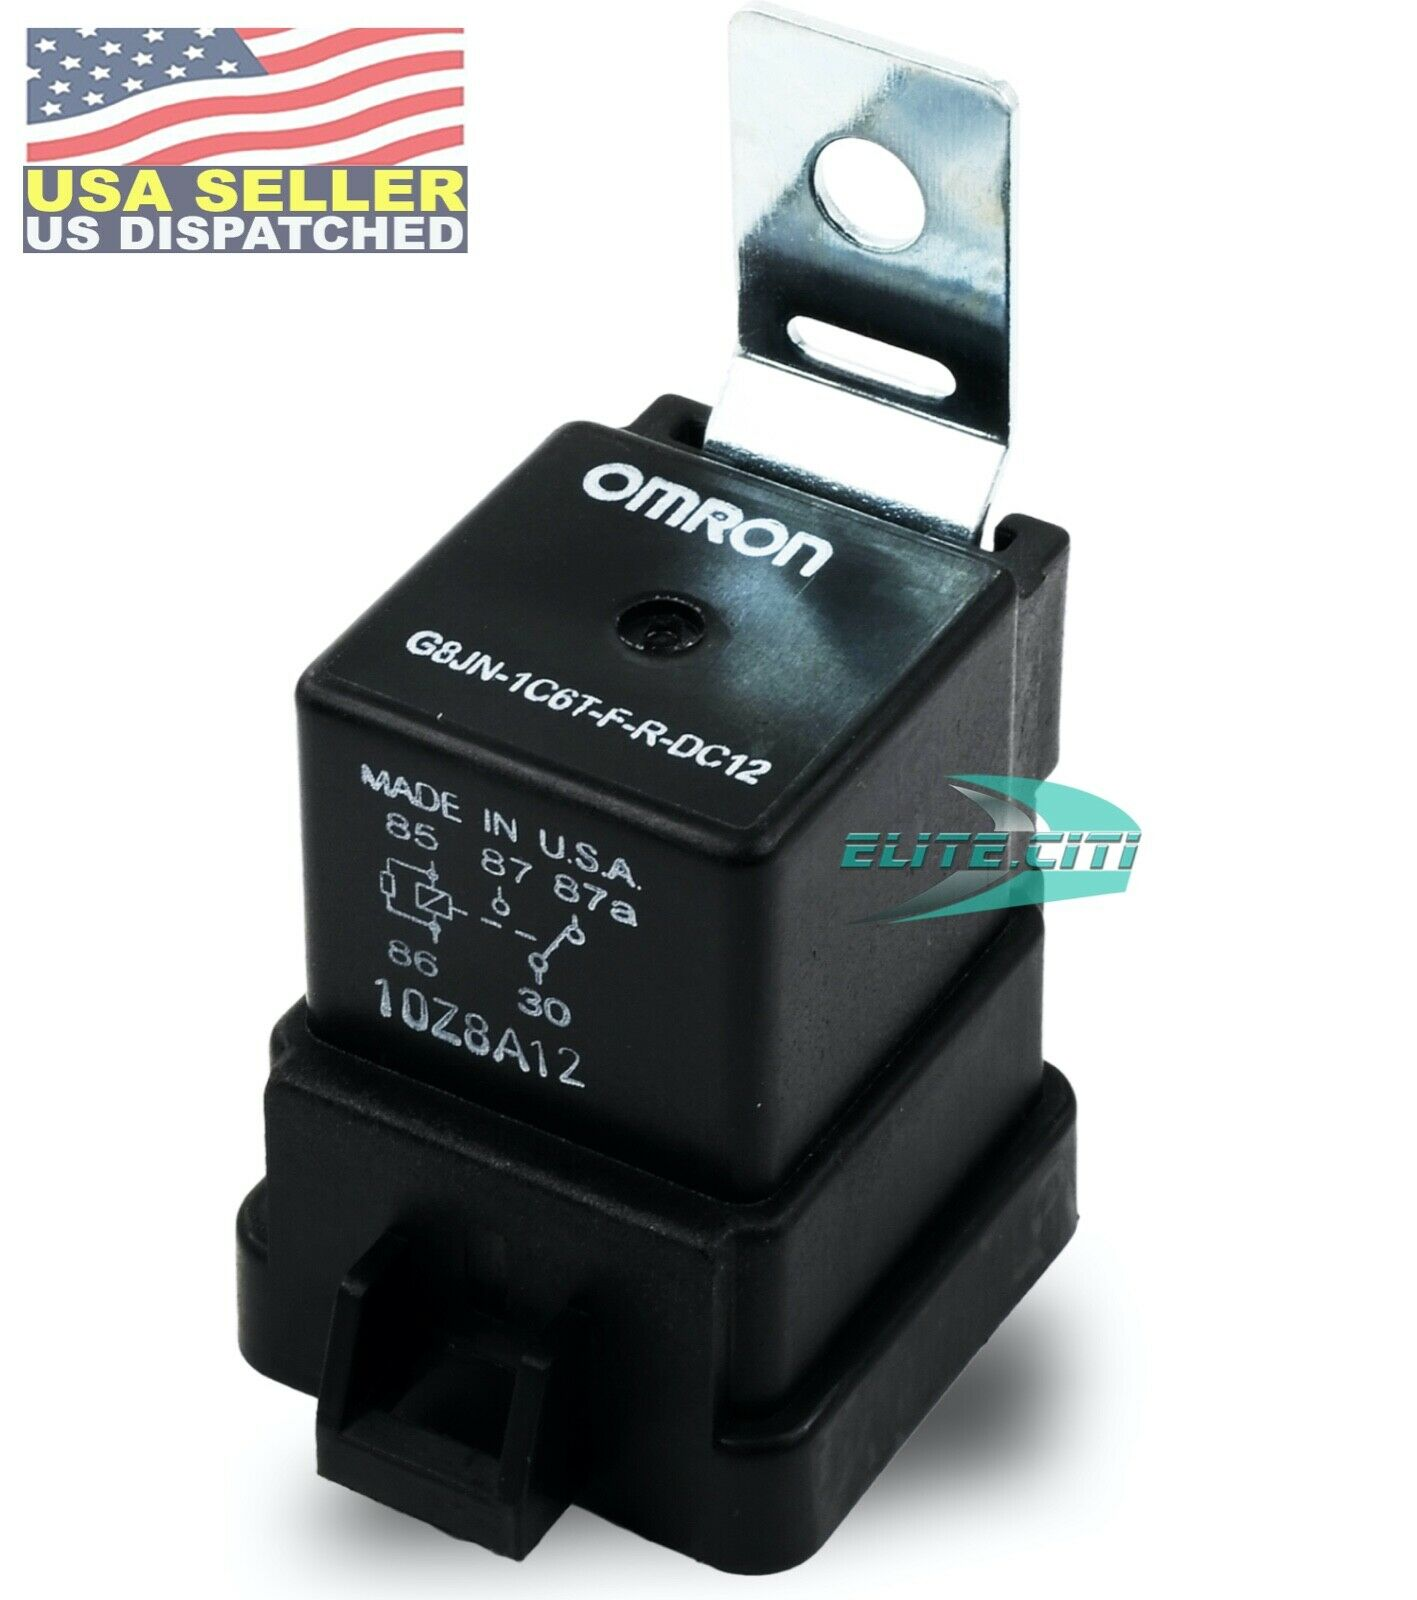 Omron Relay G8jn 1c6t F R Dc12 12vdc 30 Amp Made In Usa 1099 Current 1 Of 4only 4 Available